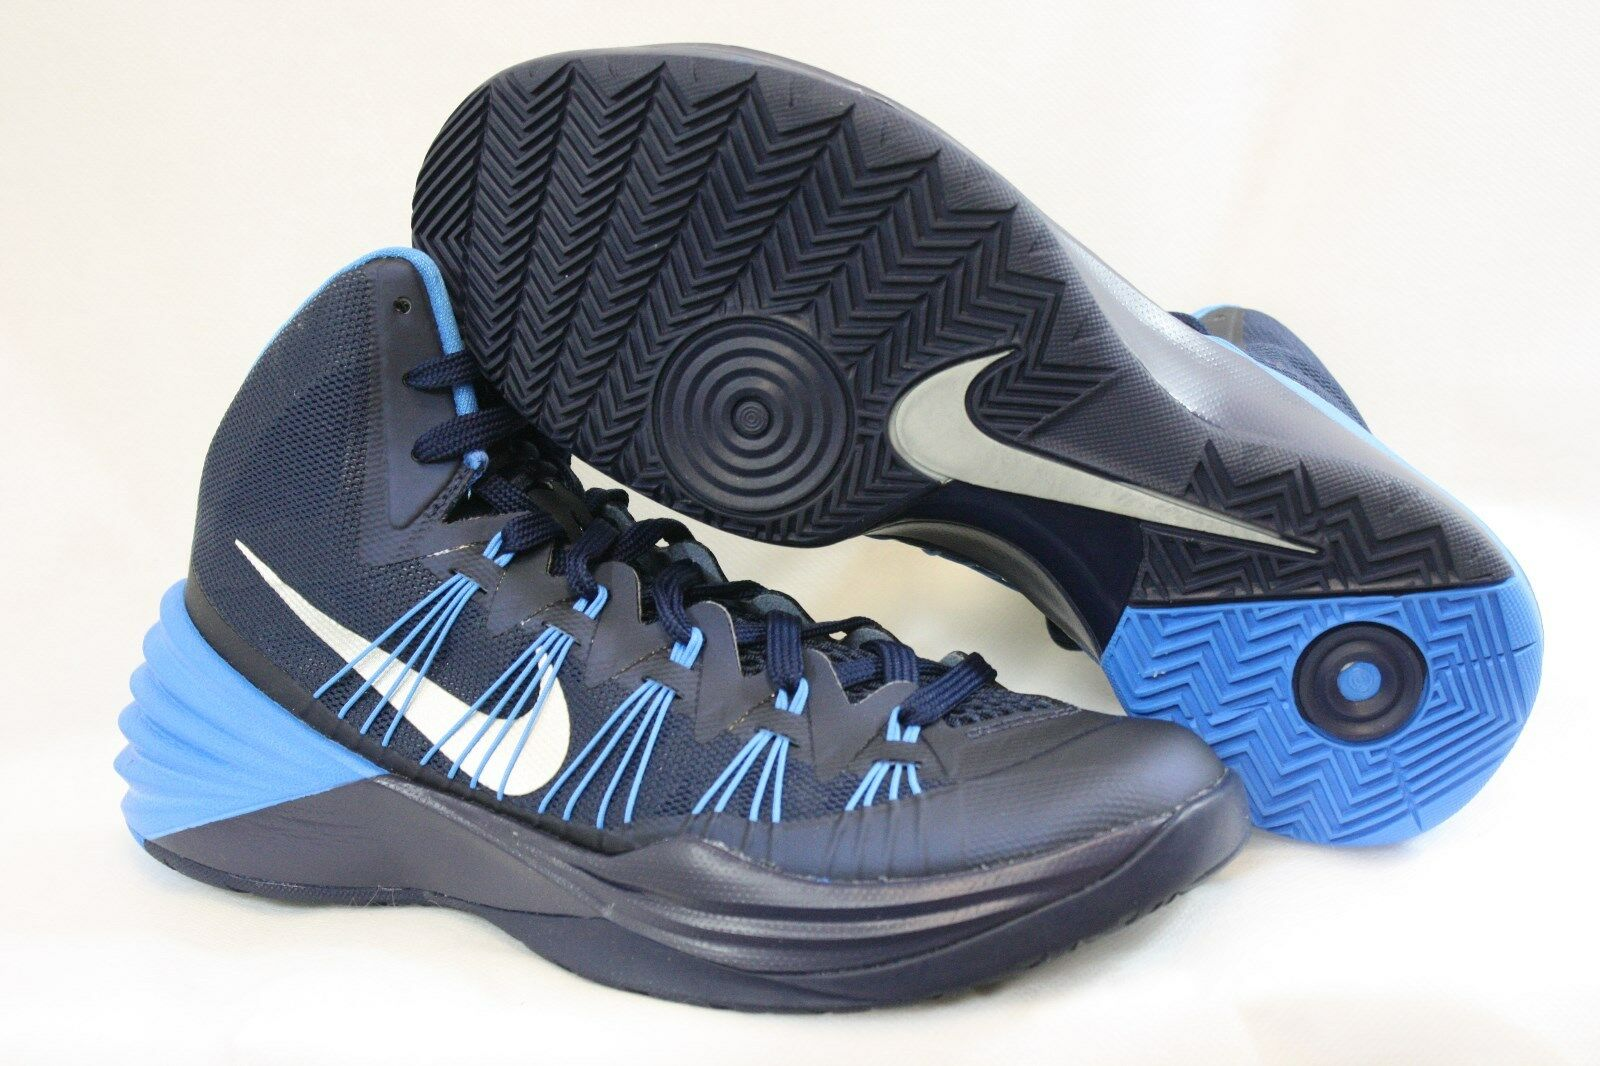 Acercarse Alegrarse Vacunar  Size 16 - Nike Hyperdunk 2013 TB Blue for sale online | eBay